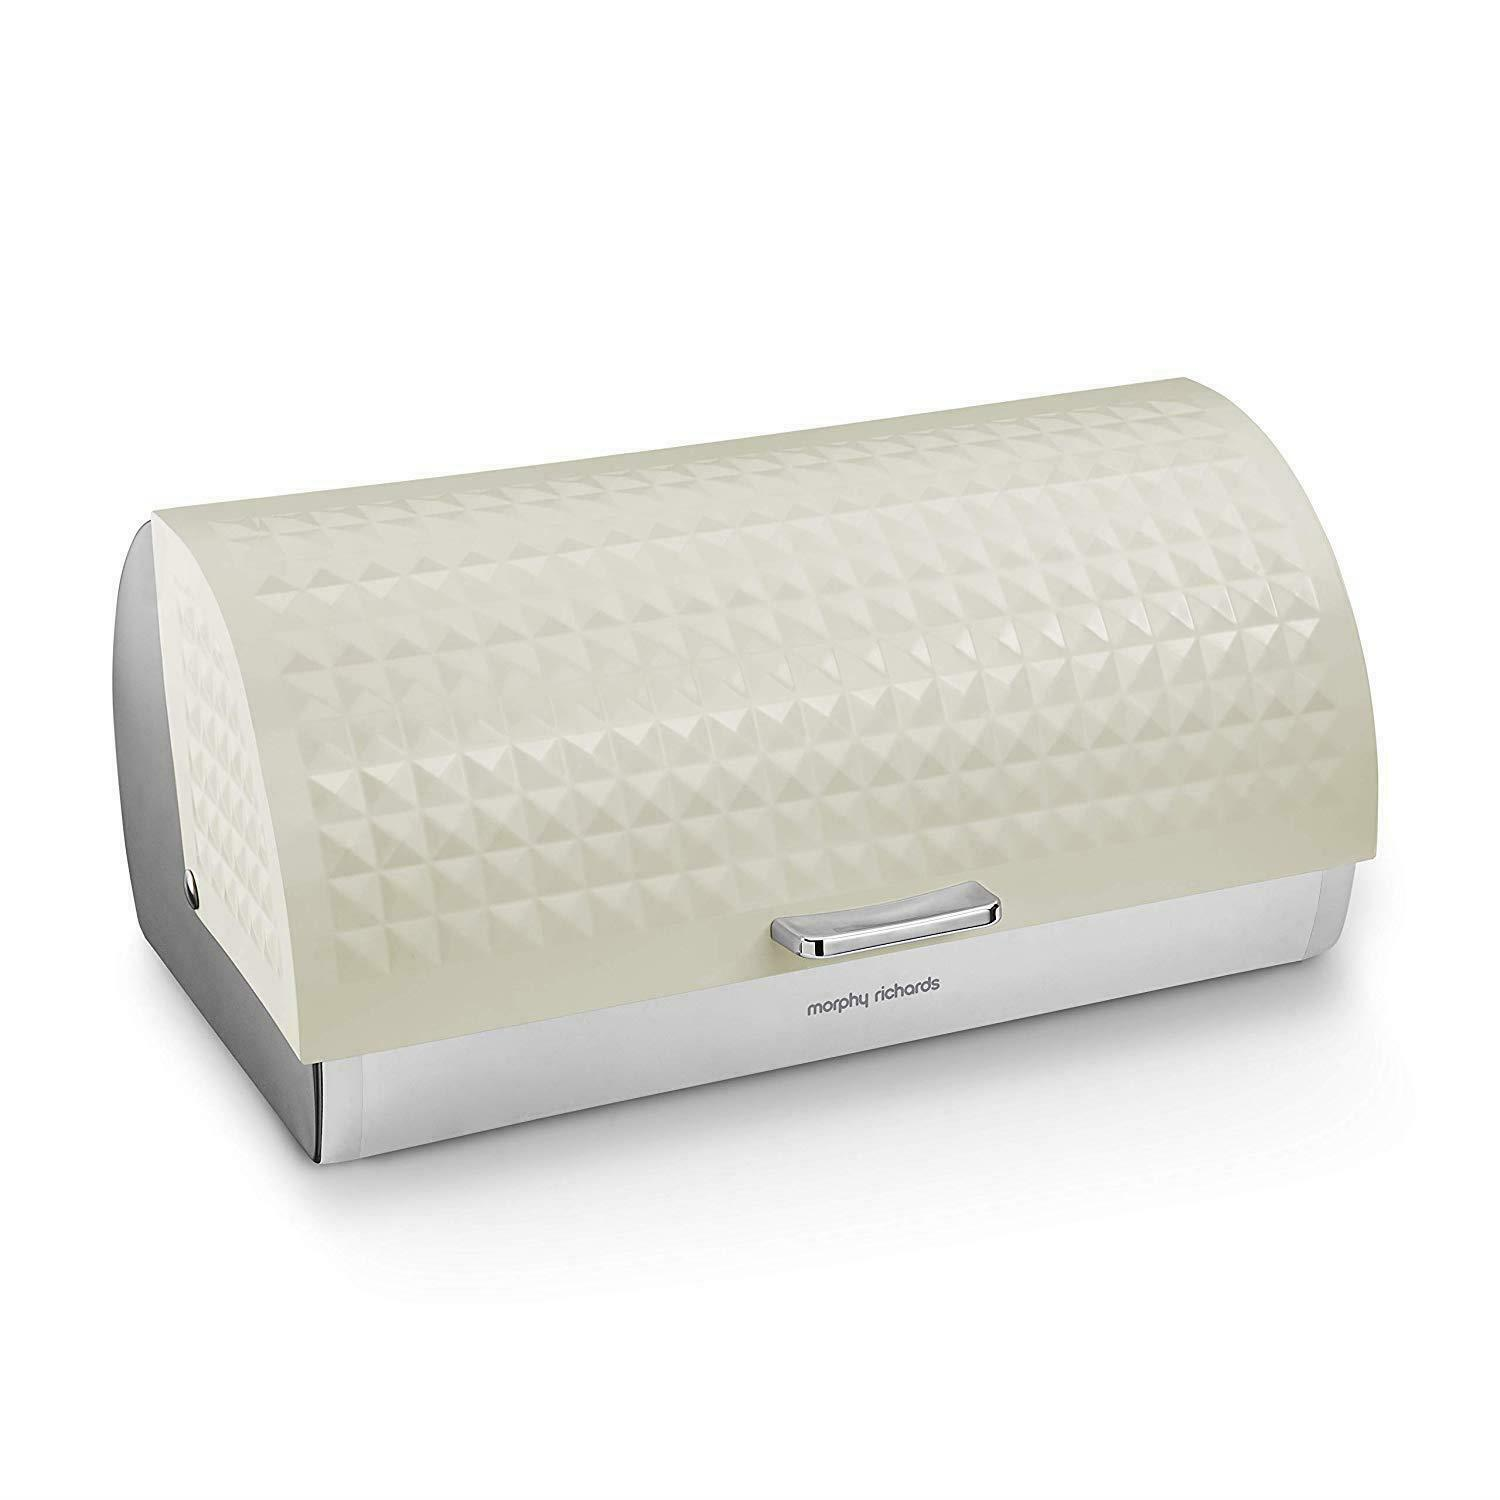 Morphy Richards Dimensions Roll Top Bread Bin With Stainless Steel Body, Ivory